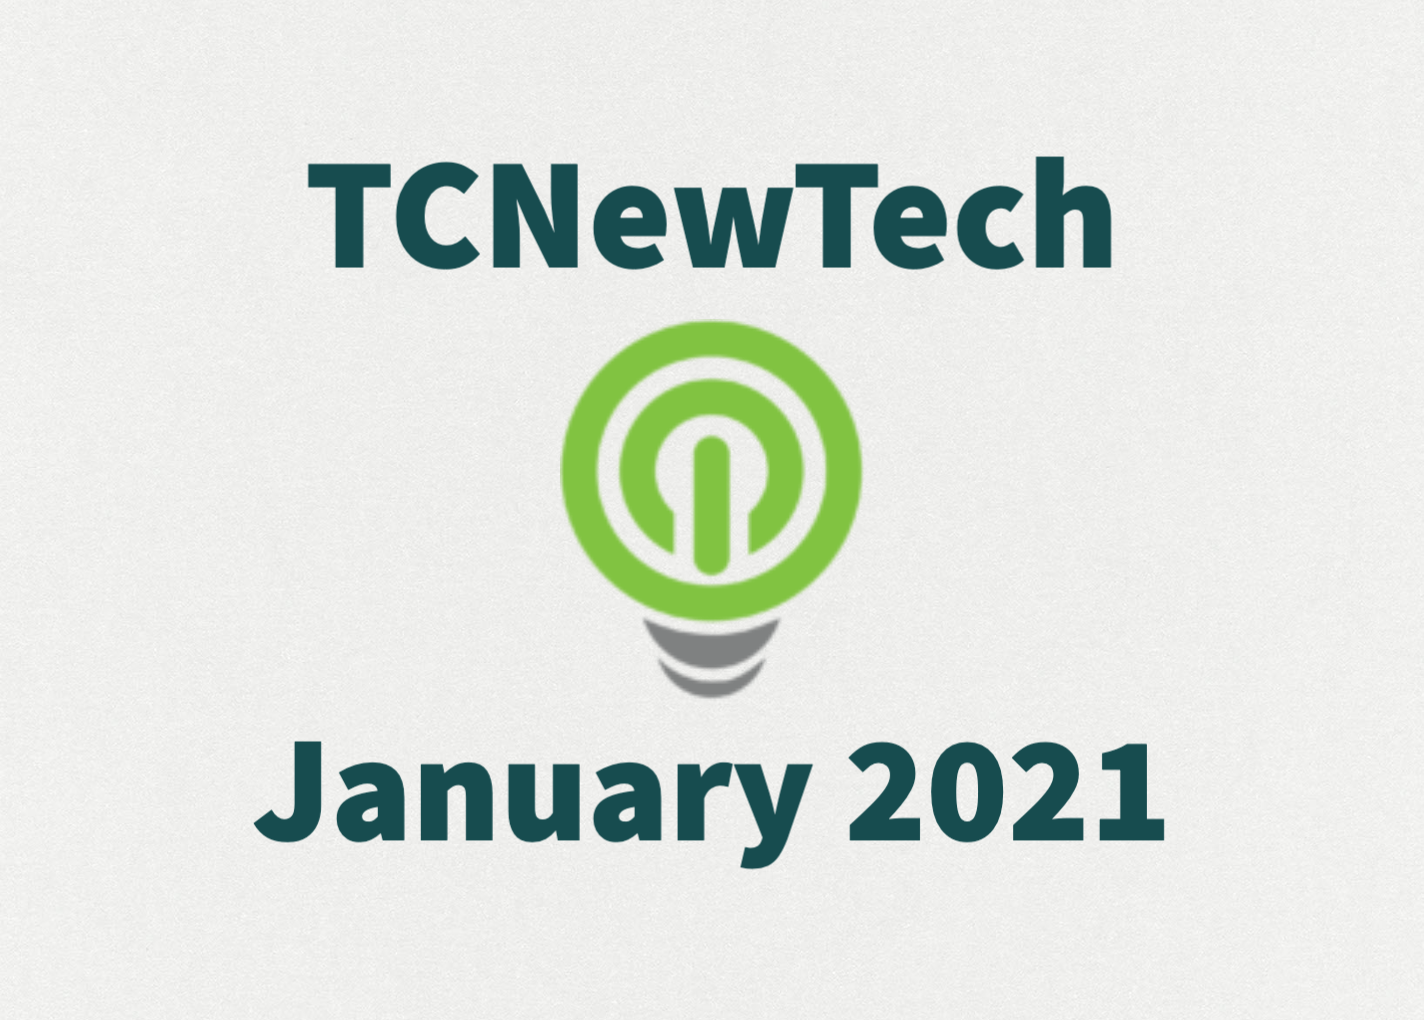 TCNewTech Pitch Contest January 2021